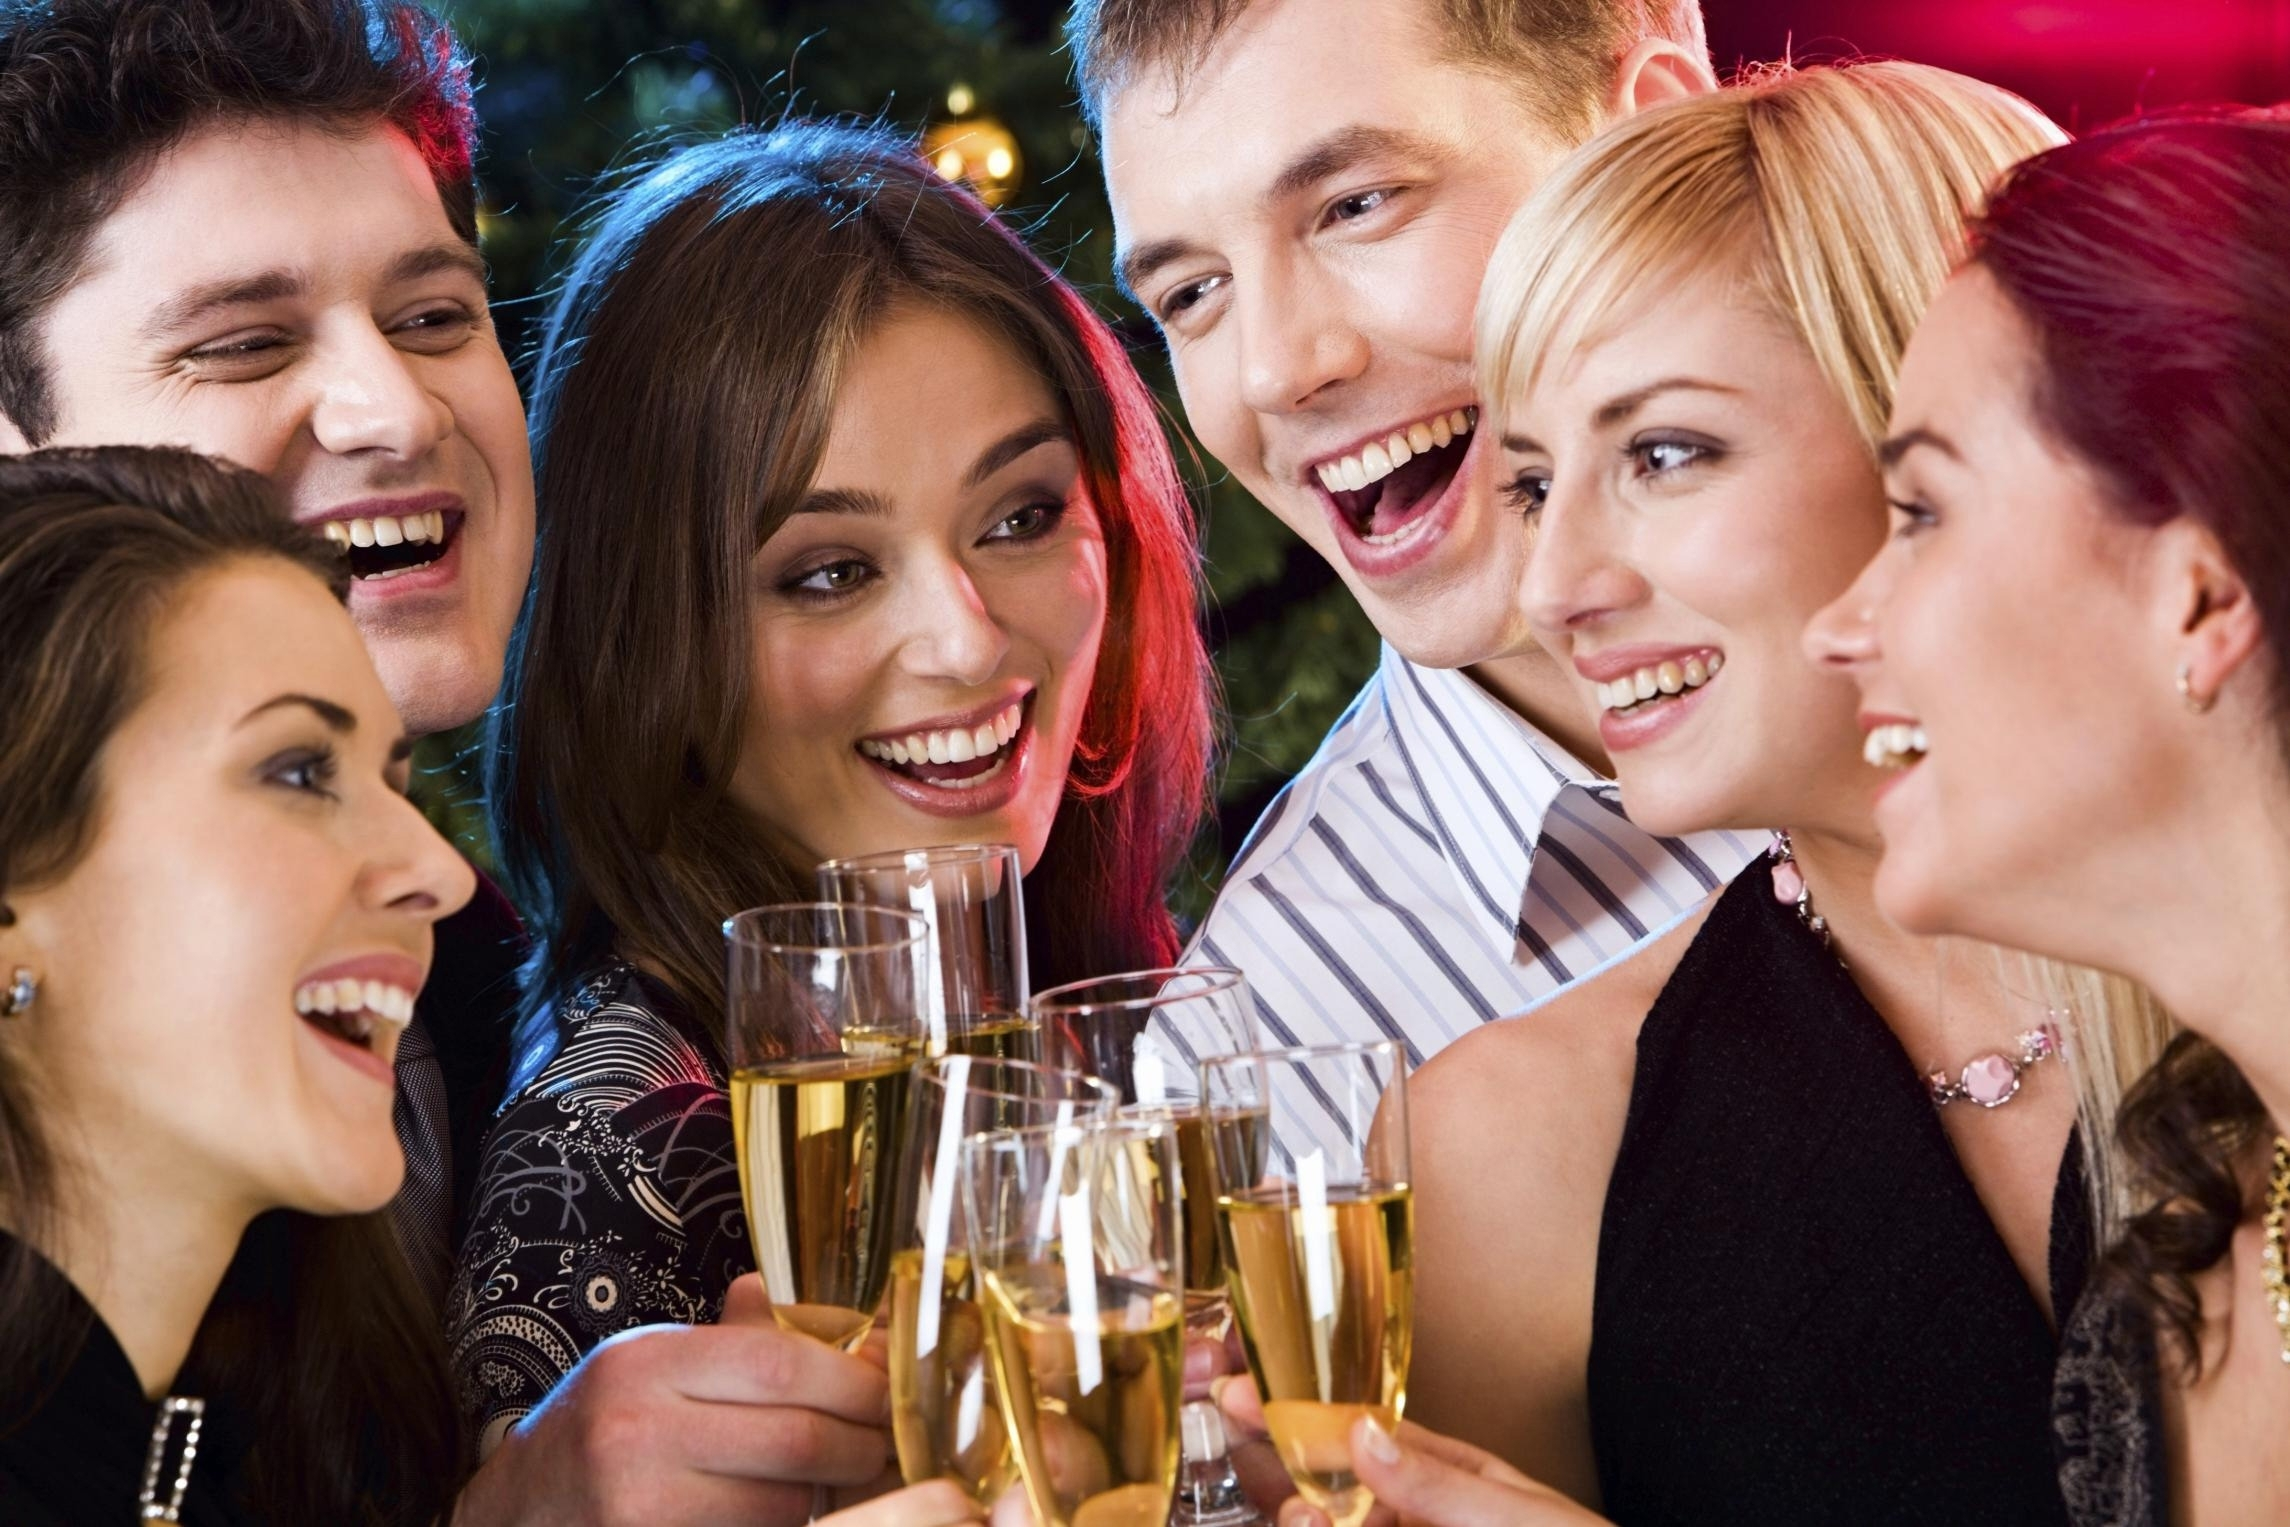 Herald View: Adverts need to stress the benefits of moderate drinking